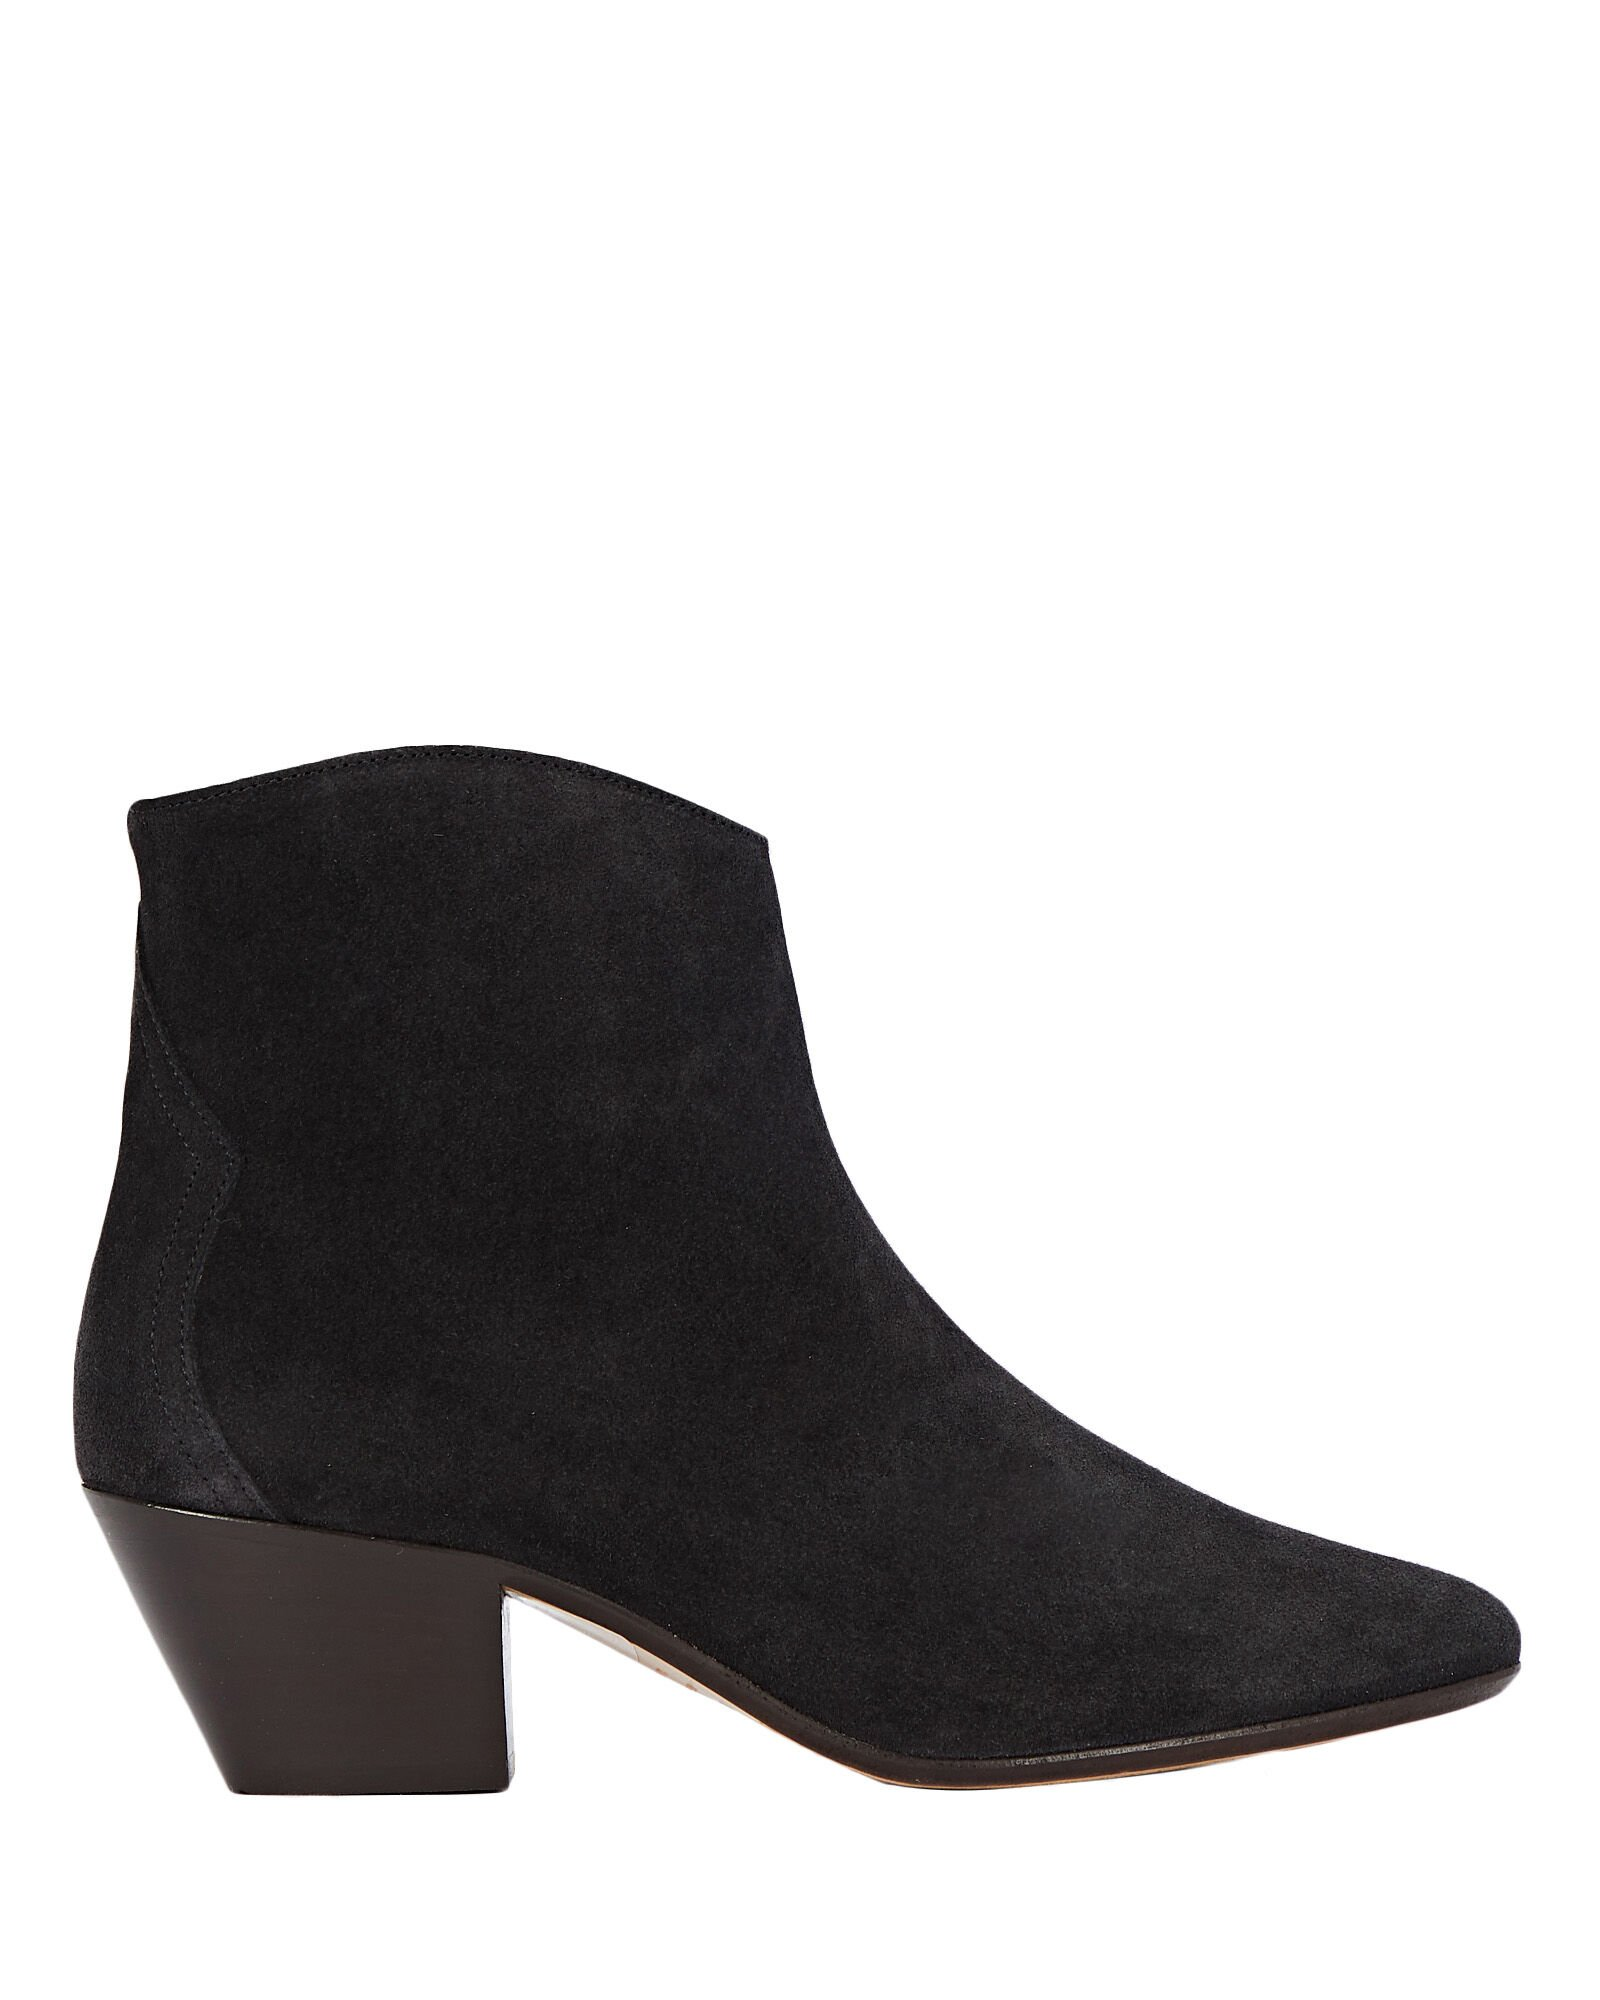 Dacken Suede Ankle Booties, BLACK, hi-res